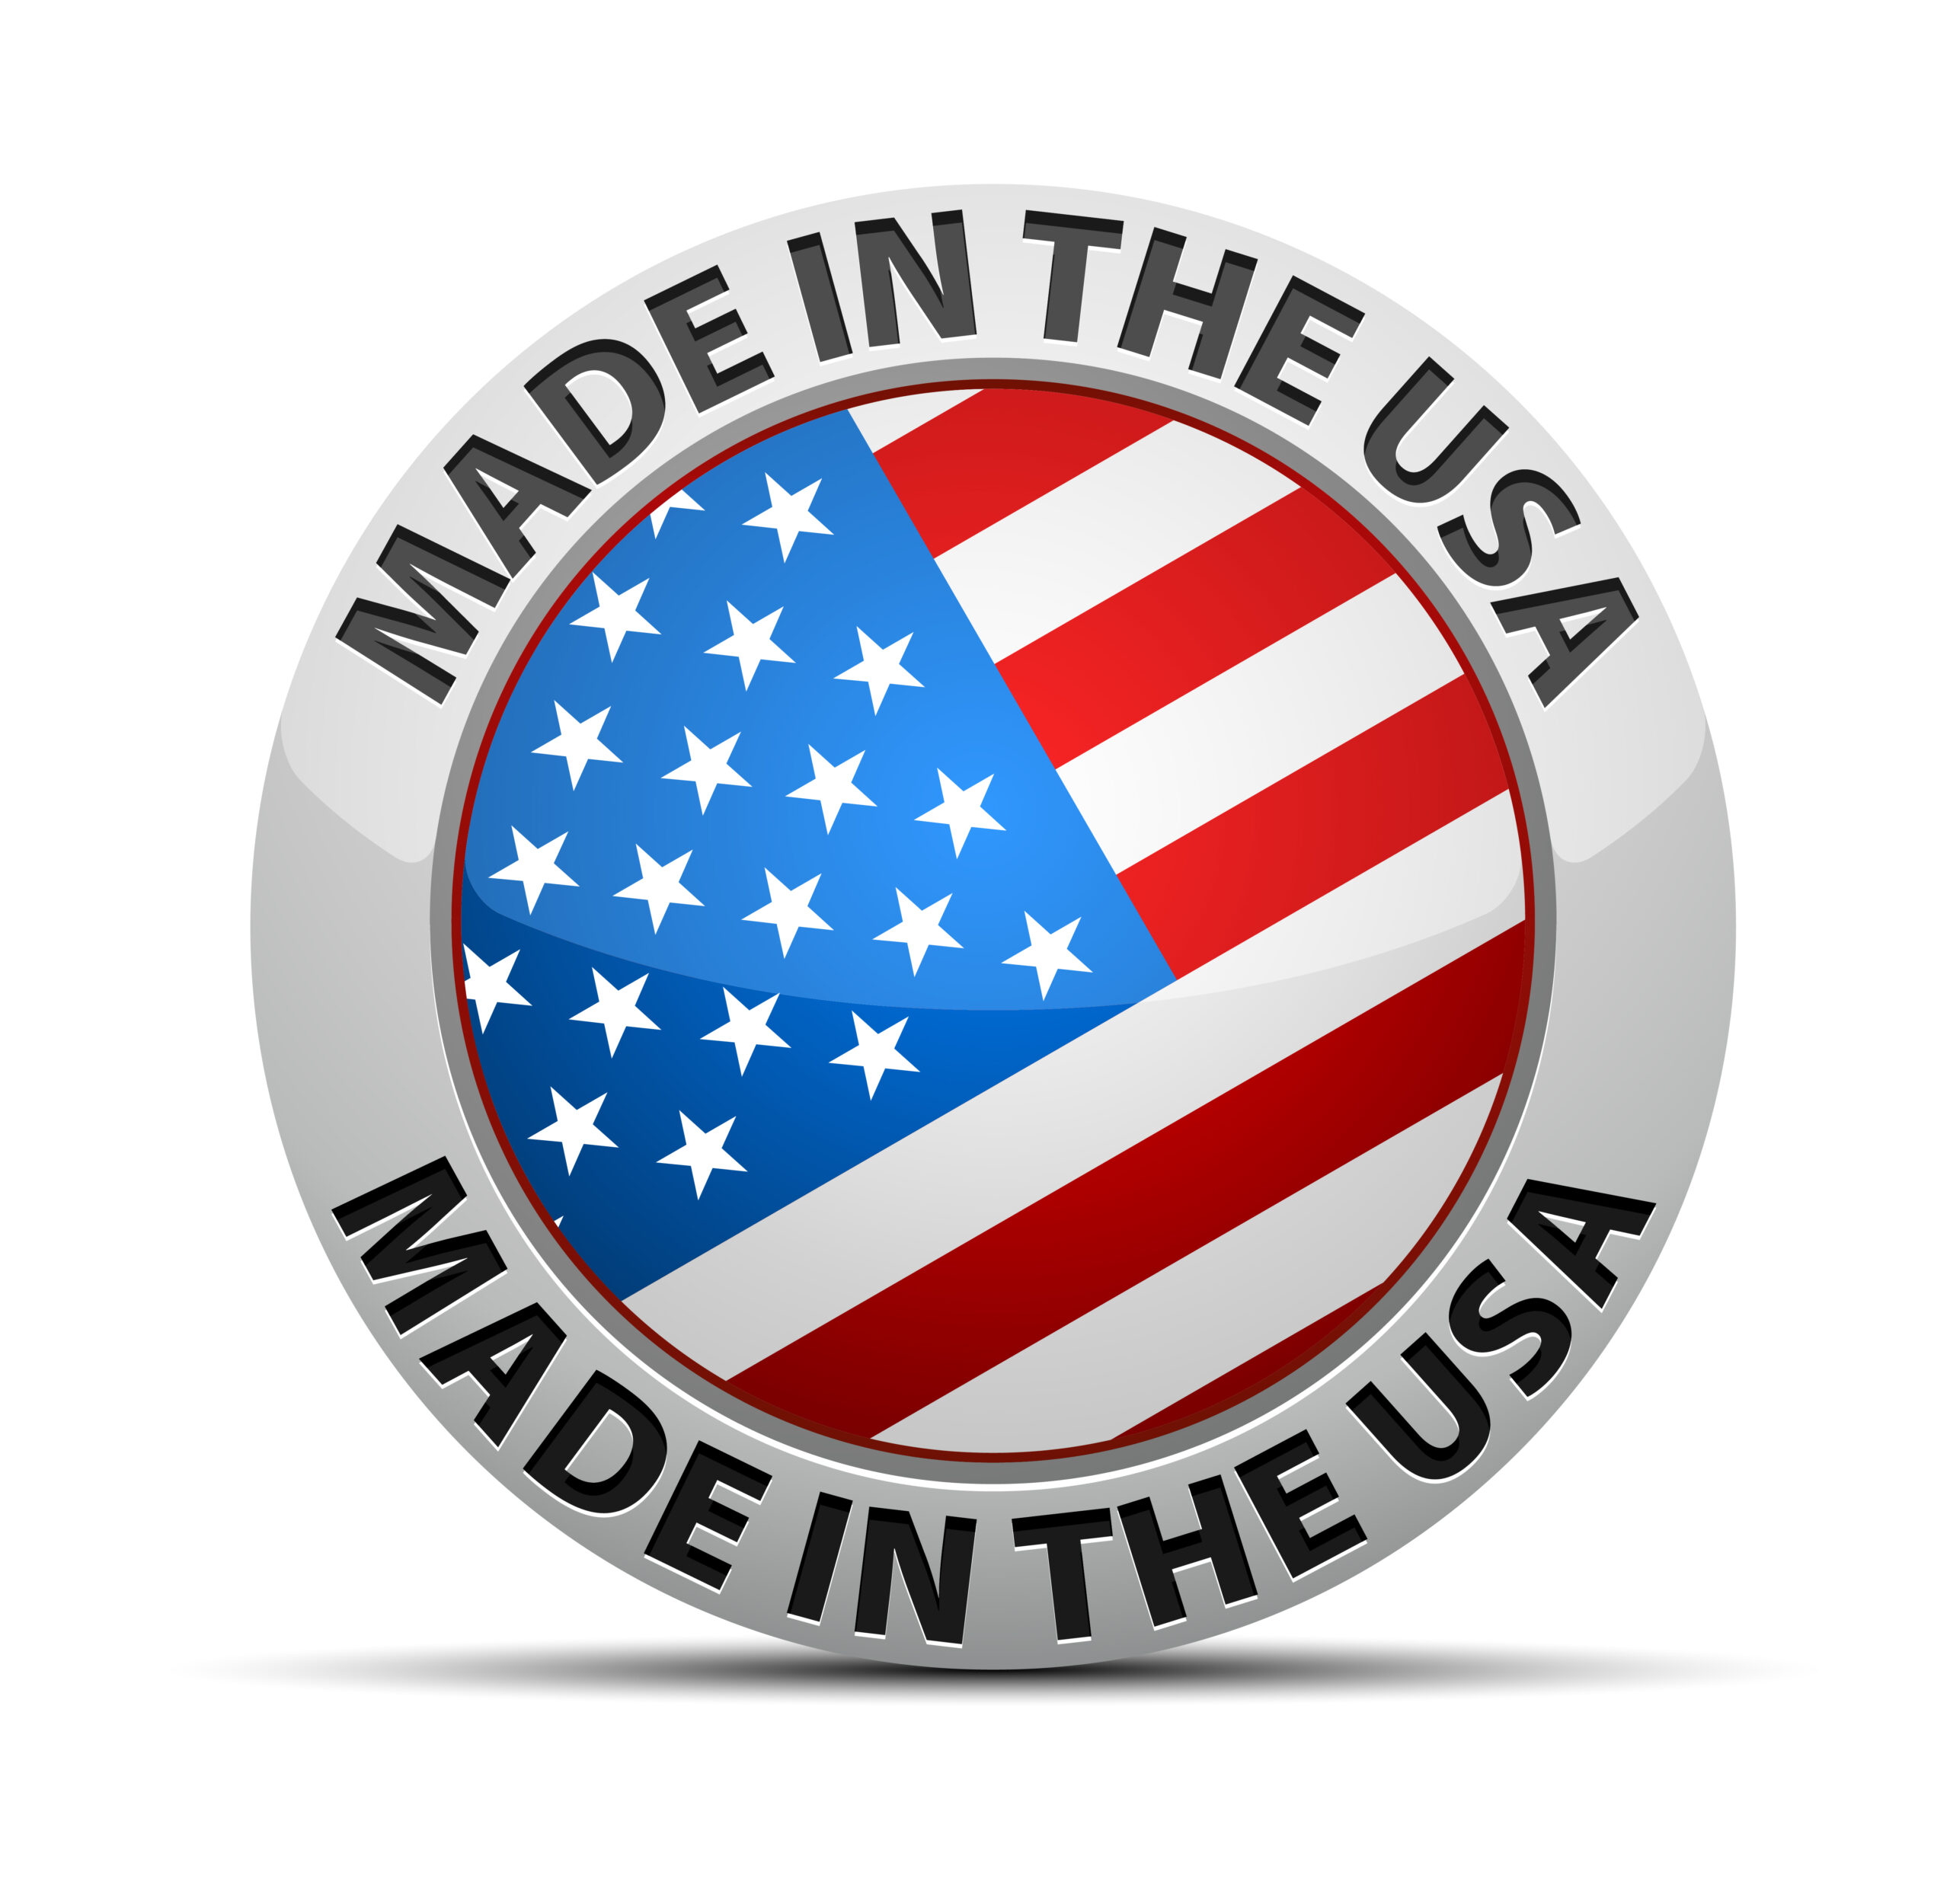 Made in USA and Offshore Services